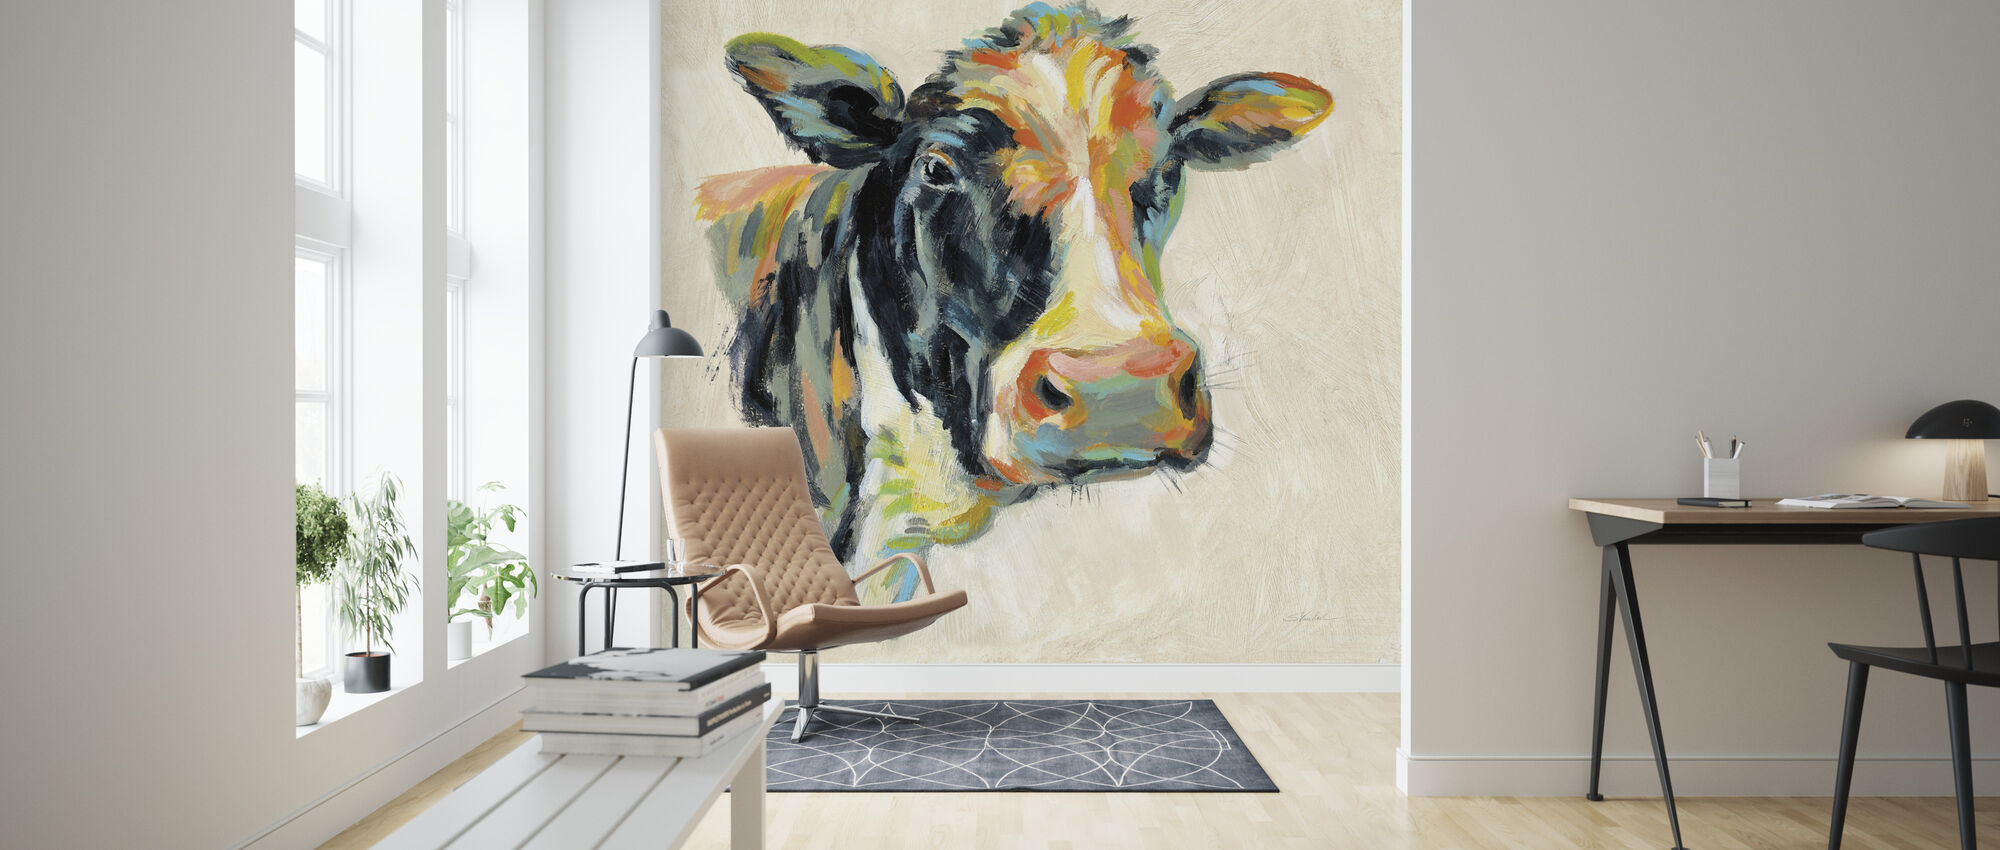 Expressionistic Cow I - Wallpaper - Living Room